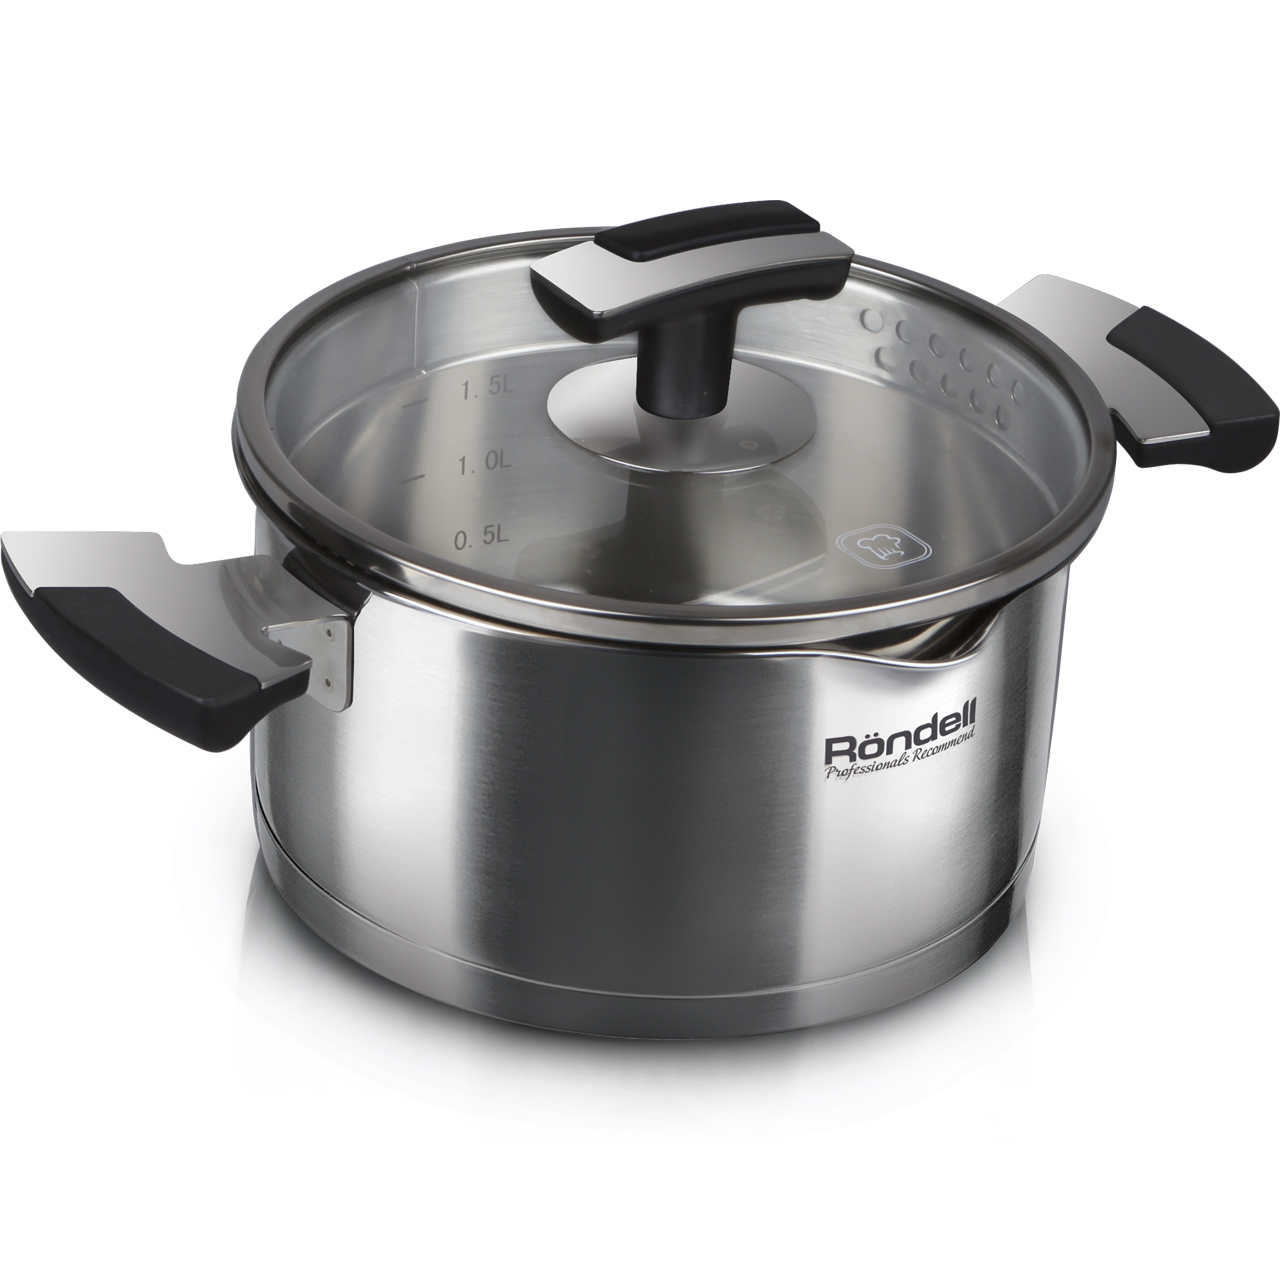 Фото - Saucepan with lid Rondell Eskell RDS-723 (Diameter 24 cm, Volume 6.2 L stainless steel, suitable for all types of plates) saucepan with lid eurostek es 1007 volume 4 5 liter diameter 22 cm пятислойное bottom suitable for all types of plates